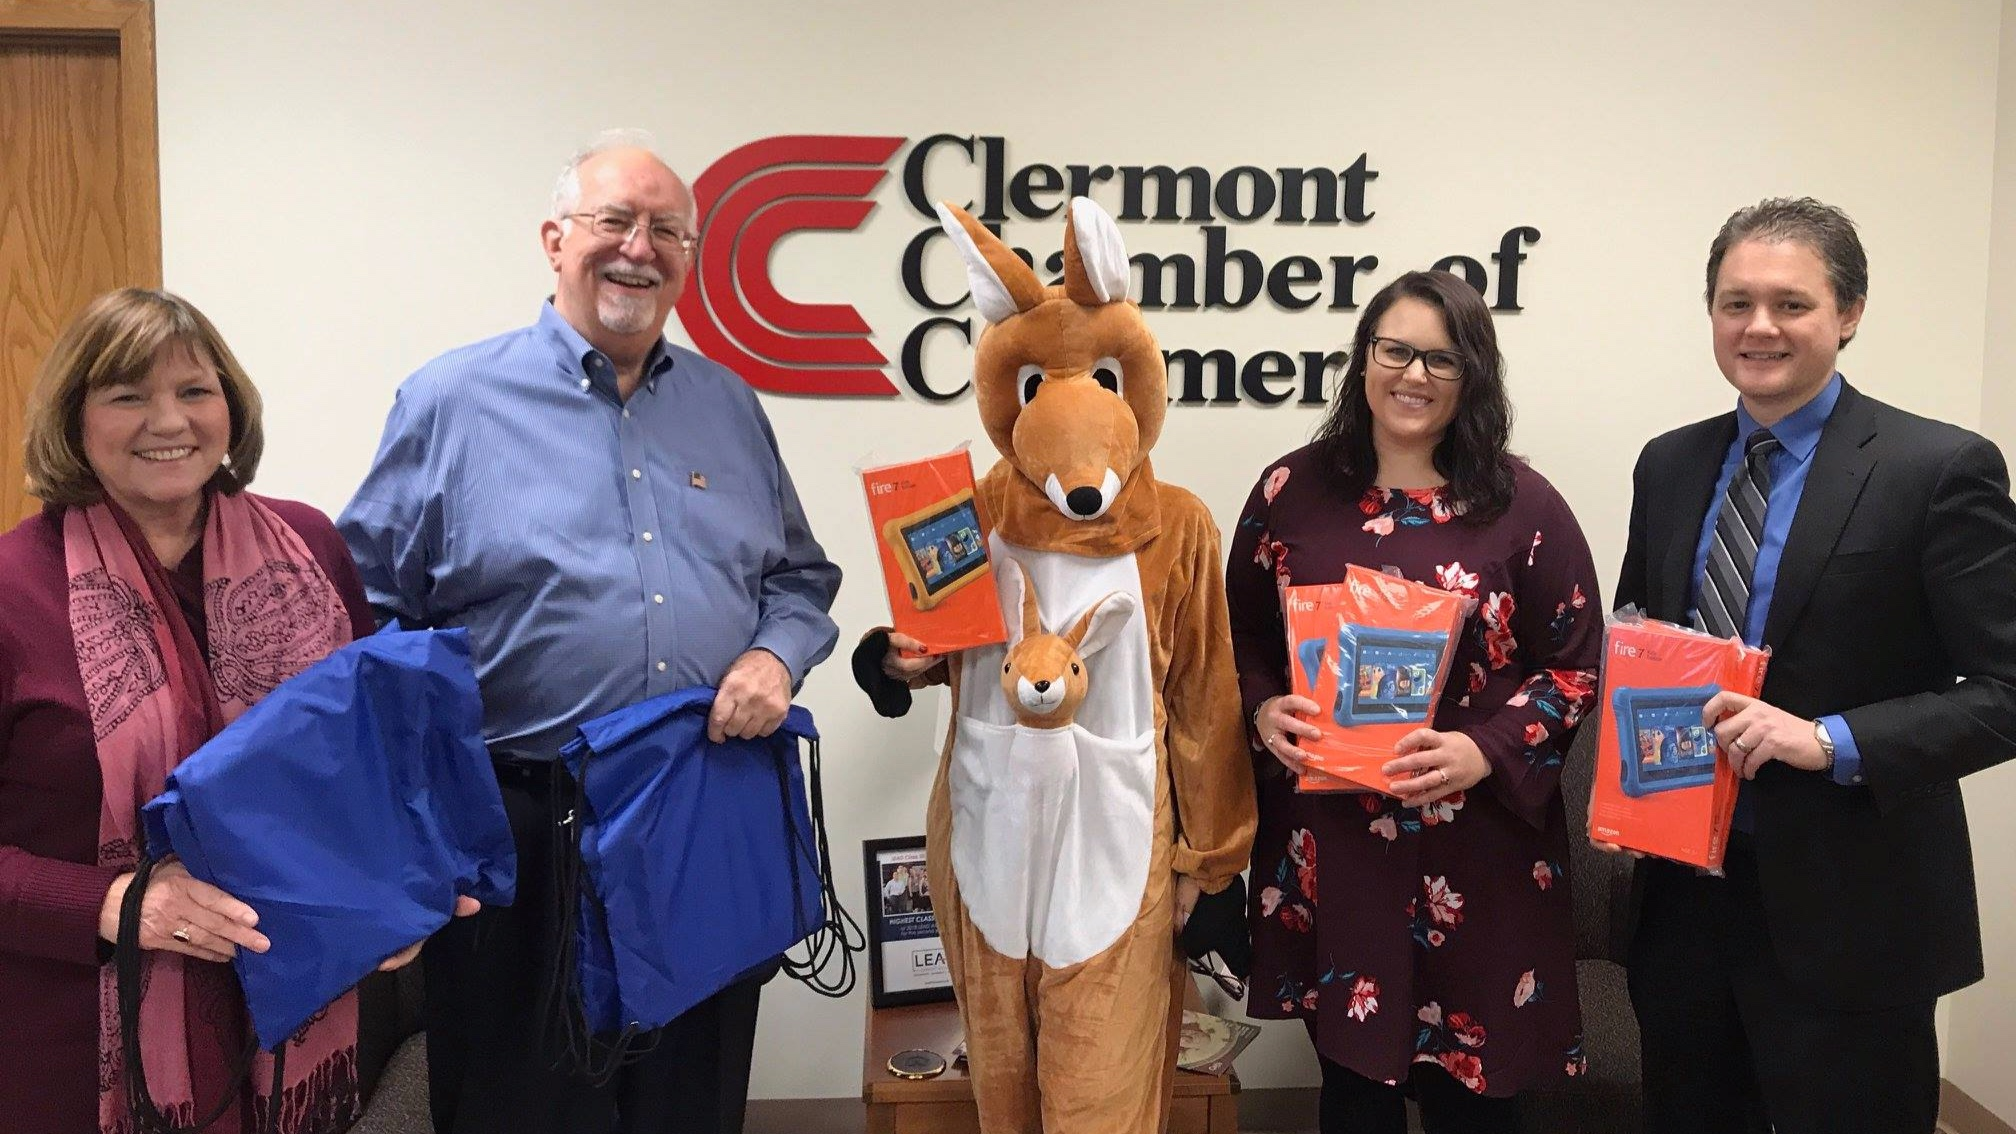 Pictured below are Maria Meinking of YWCA, John Melvin of KLICWOW, Klic LaRoo, Sarah Breedlove of YWCA, and RiverHills Bank President/CEO Brian Dunlap.